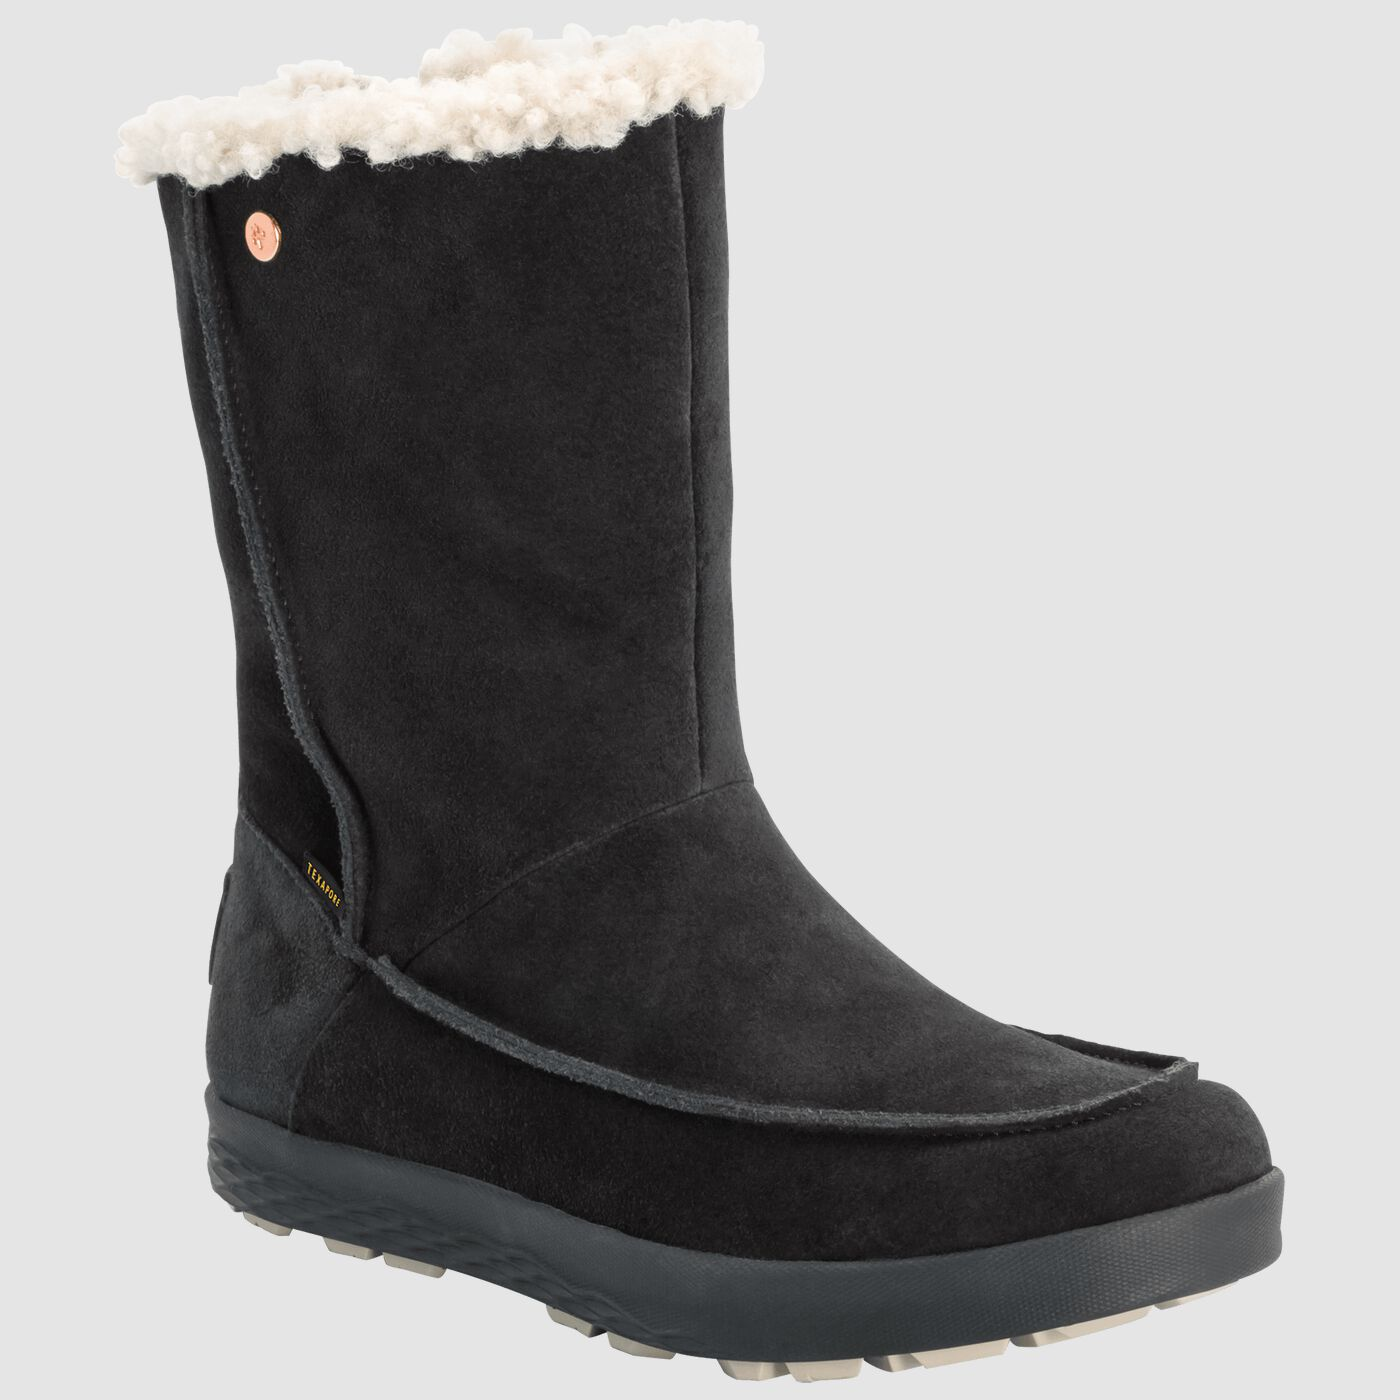 AUCKLAND WT TEXAPORE BOOT H W